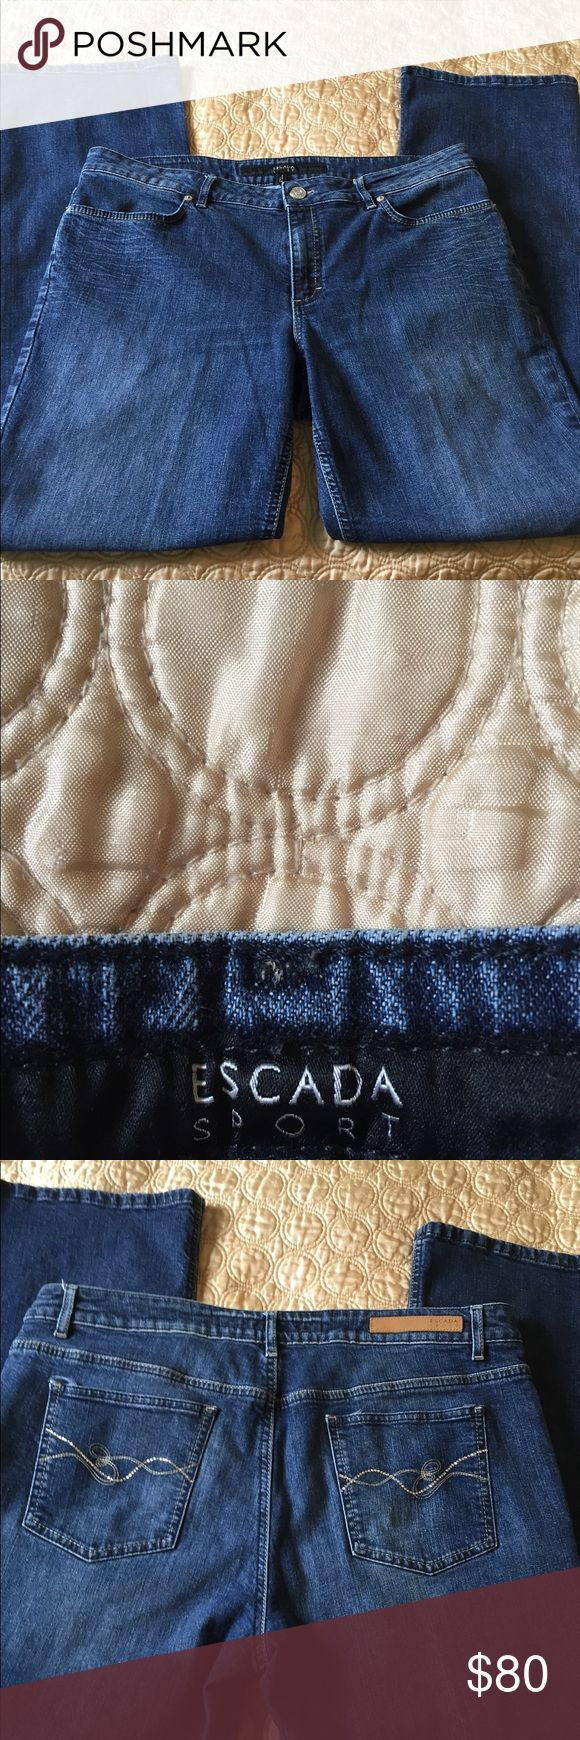 Escada Sport jeans Escada Sport jeans, like new! Rhinestone E on each back pocket! Gives them lots of bling! Size 46 with 32 inch inseam. Escada Jeans Boot Cut